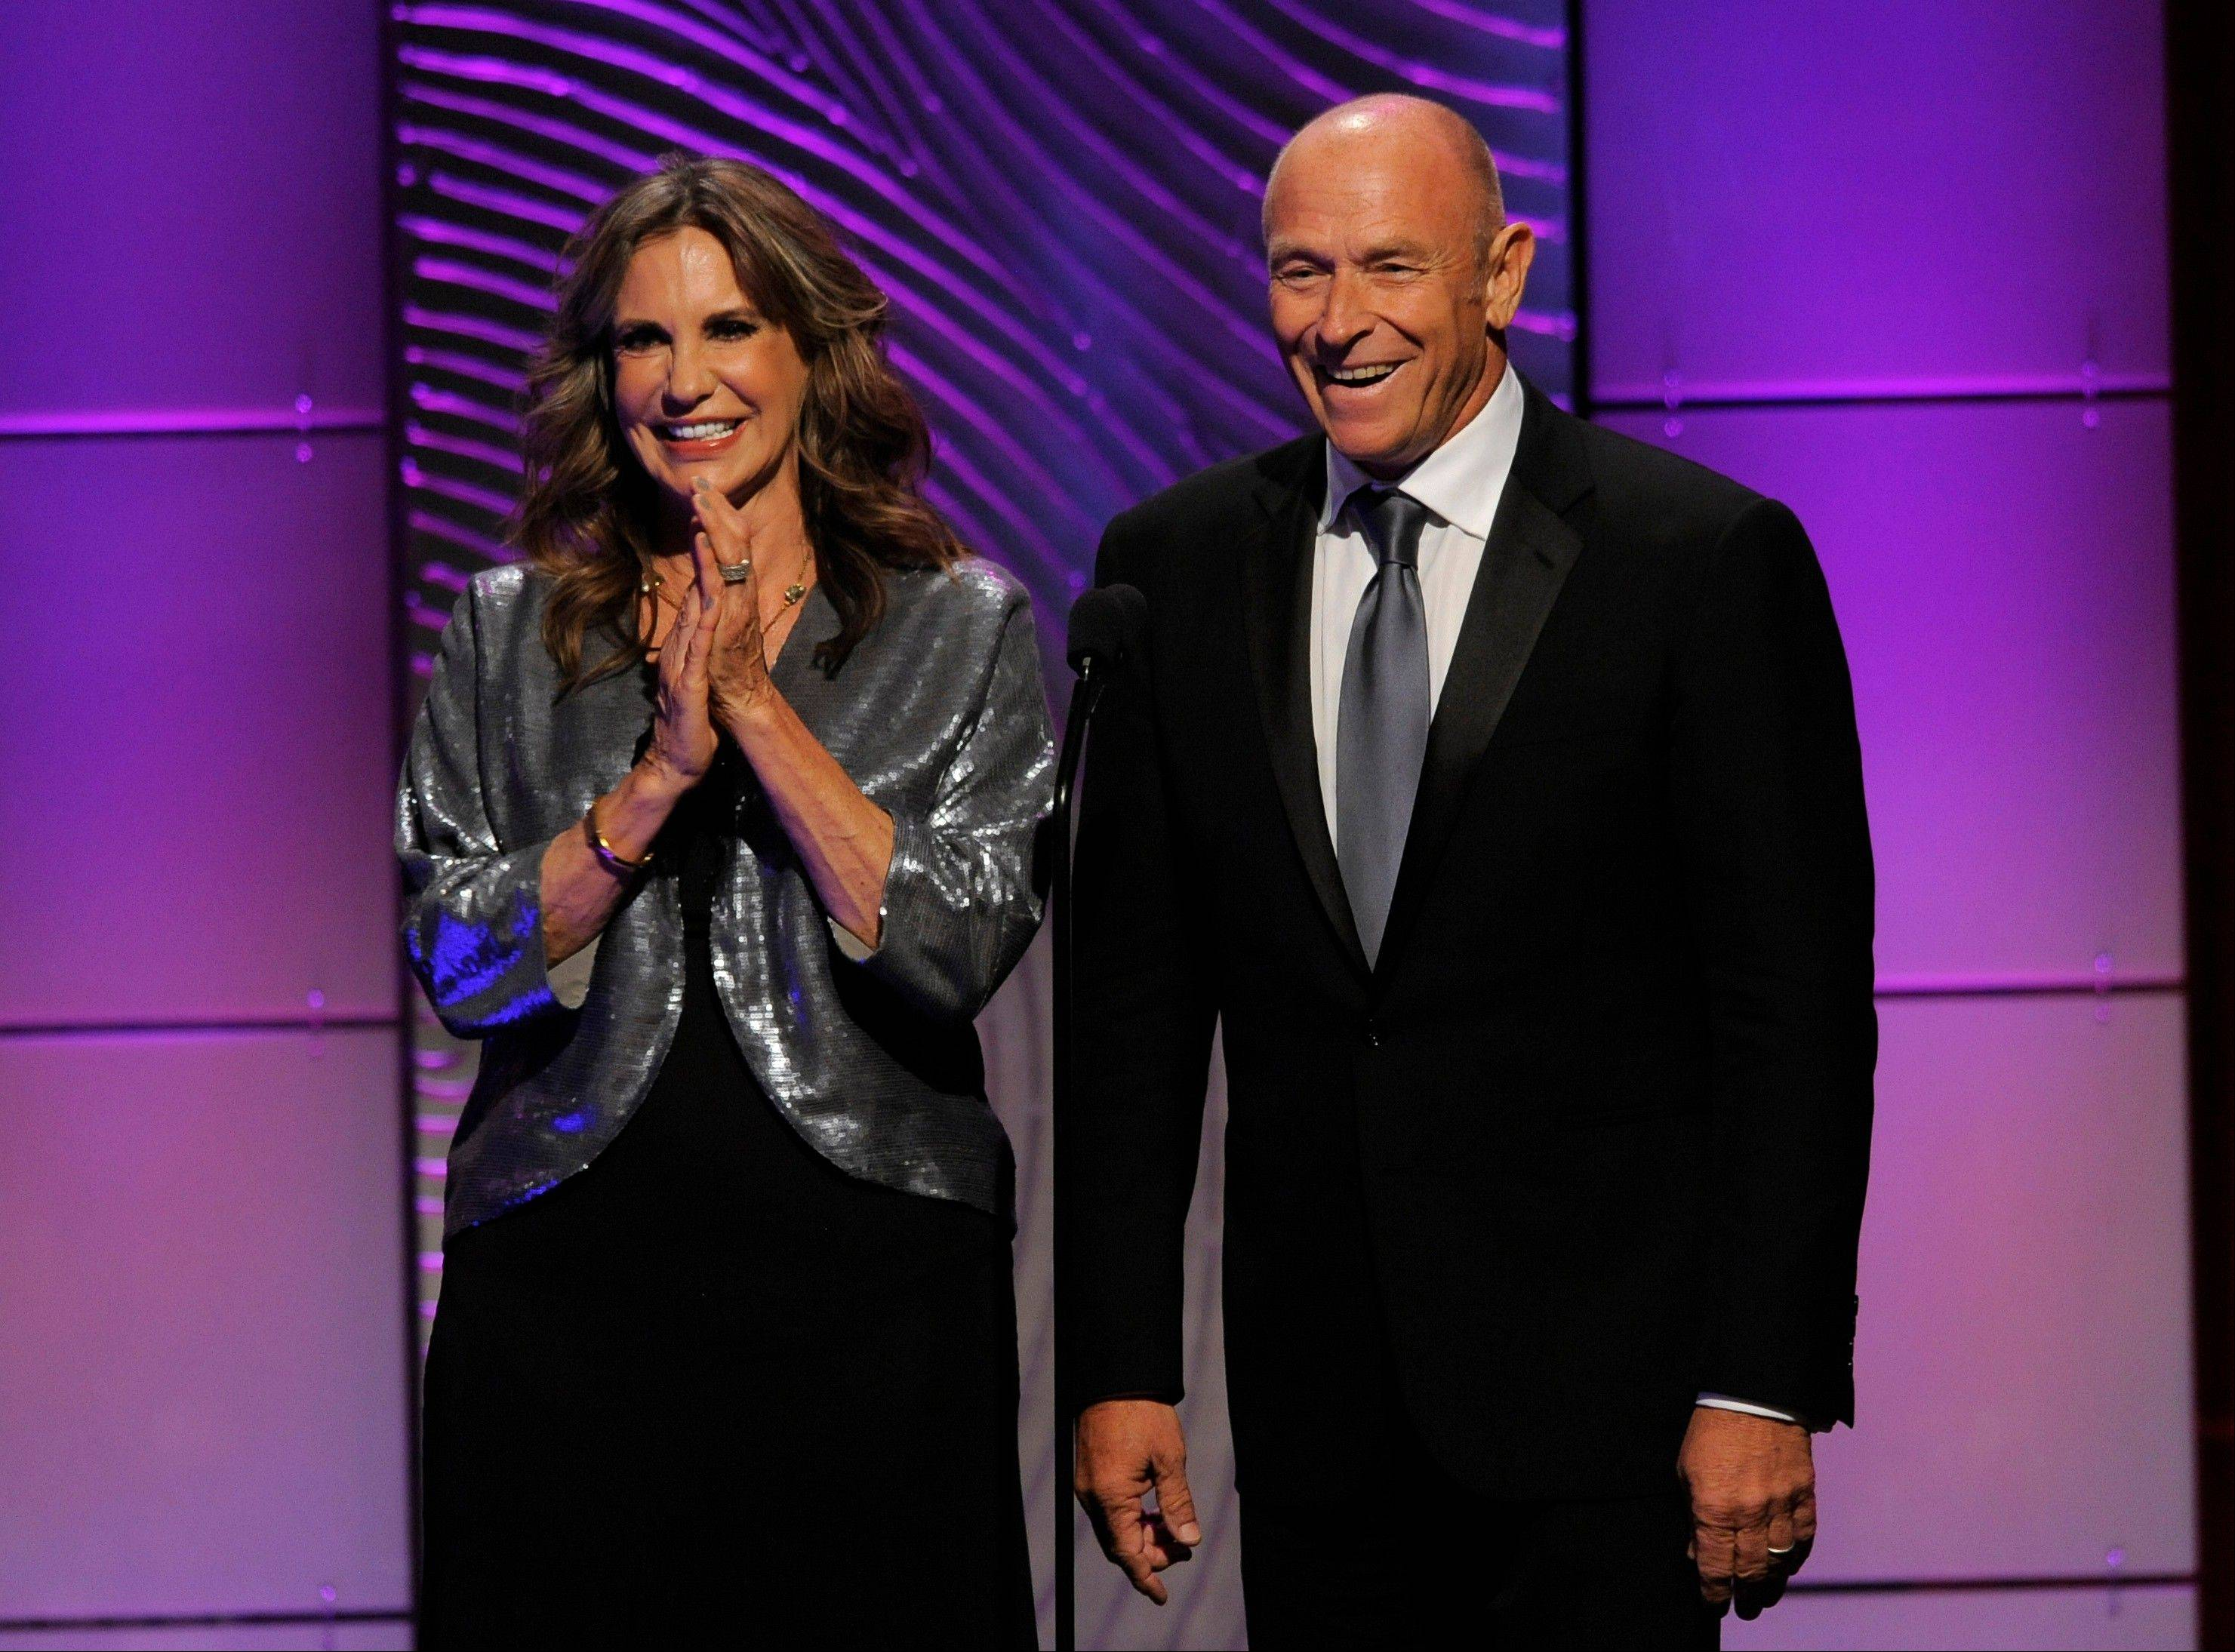 Jess Walton, left, and Corbin Bernsen present an in memoriam tribute at the 40th Annual Daytime Emmy Awards on Sunday, June 16, 2013, in Beverly Hills, Calif.